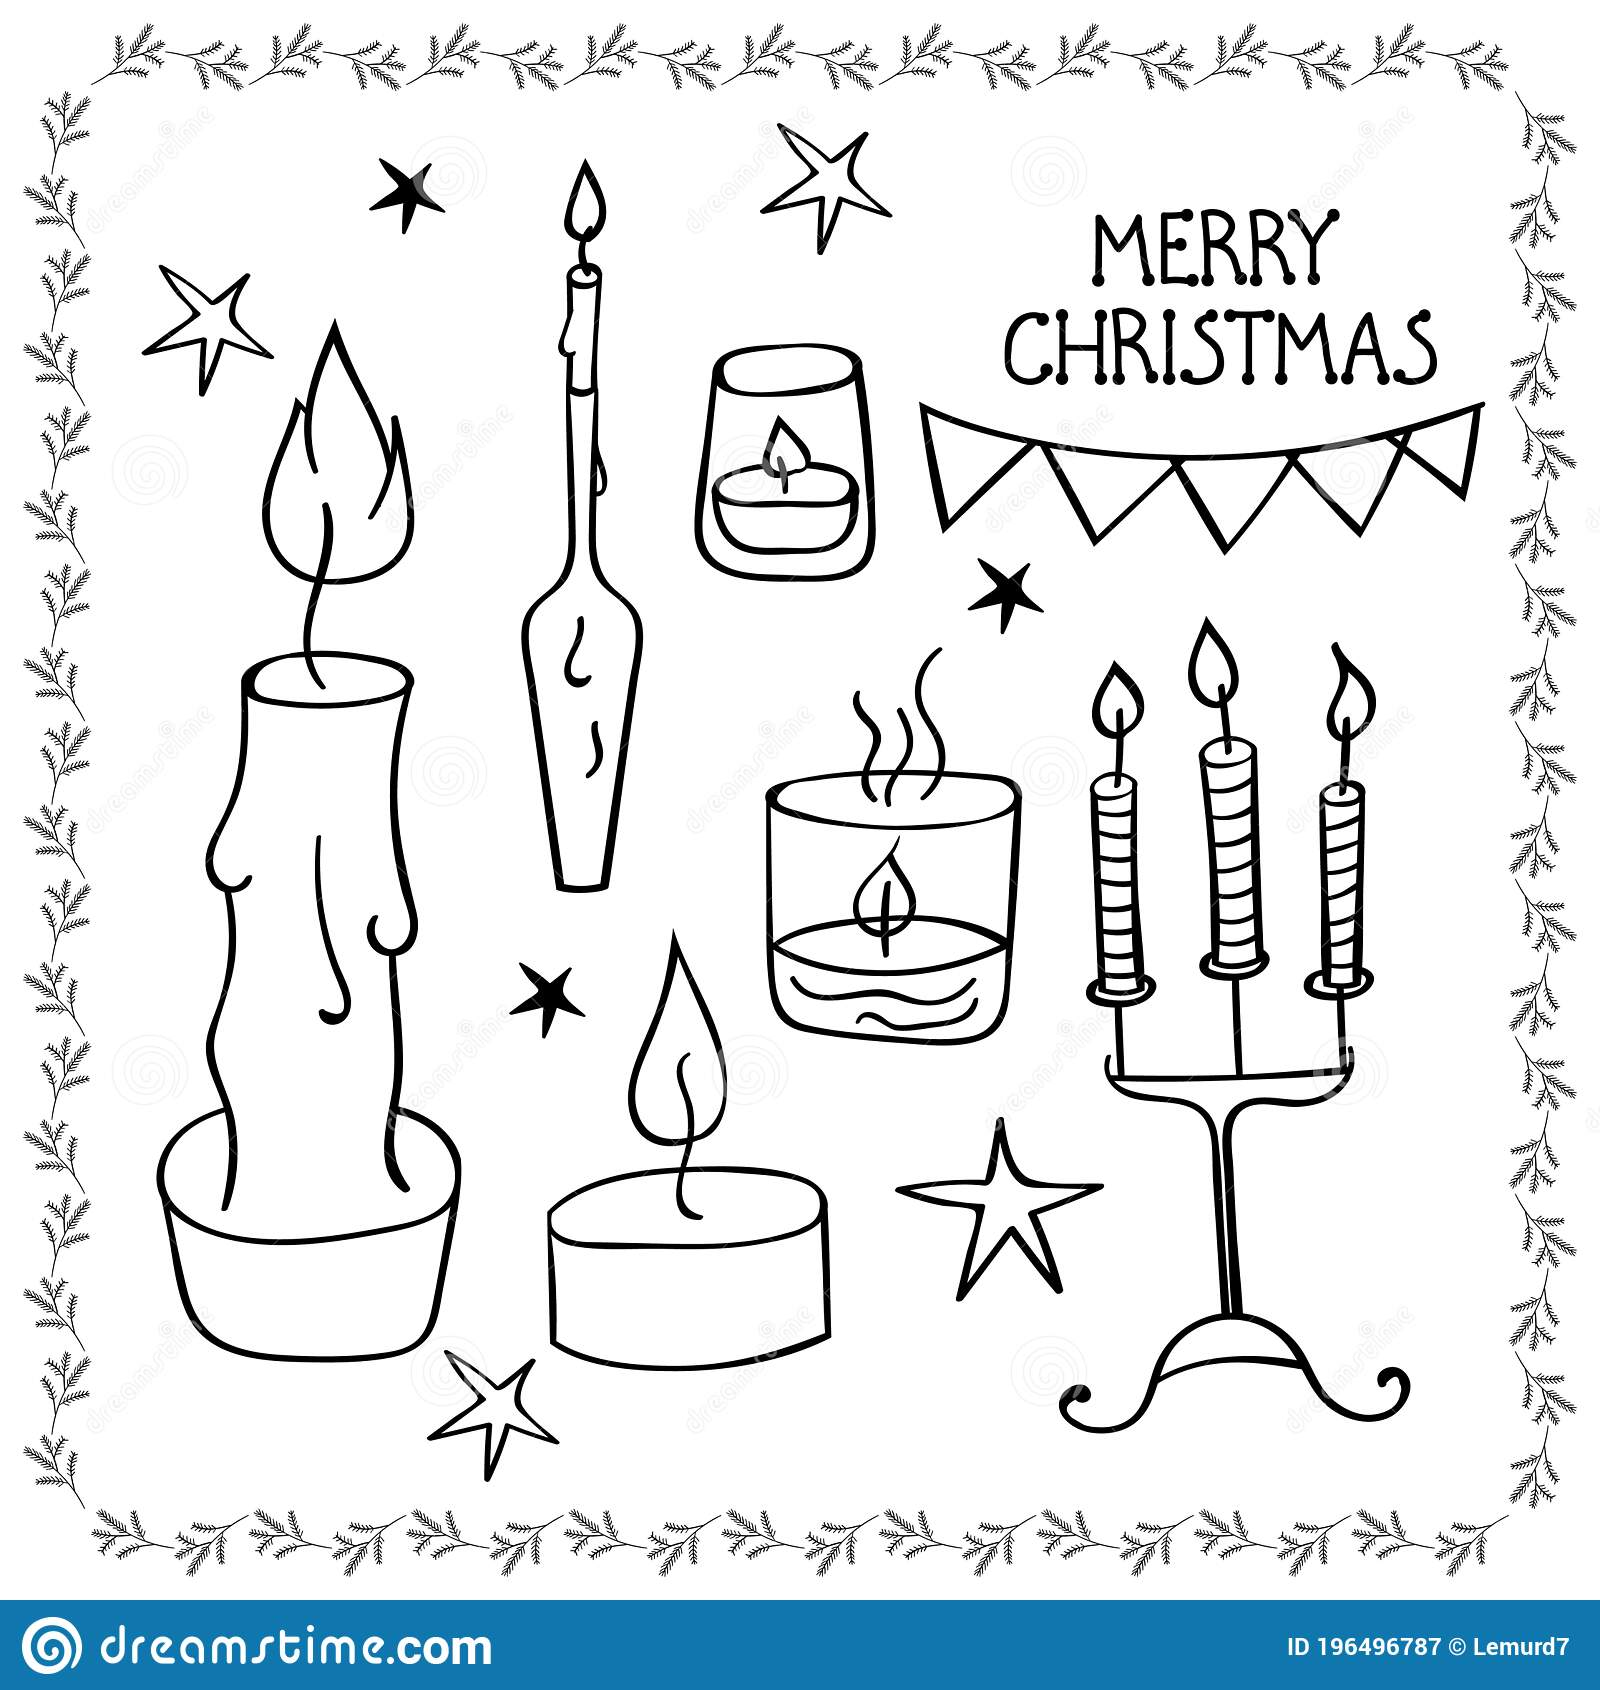 Candle Holders Stock Illustrations 164 Candle Holders Stock Illustrations Vectors Clipart Dreamstime